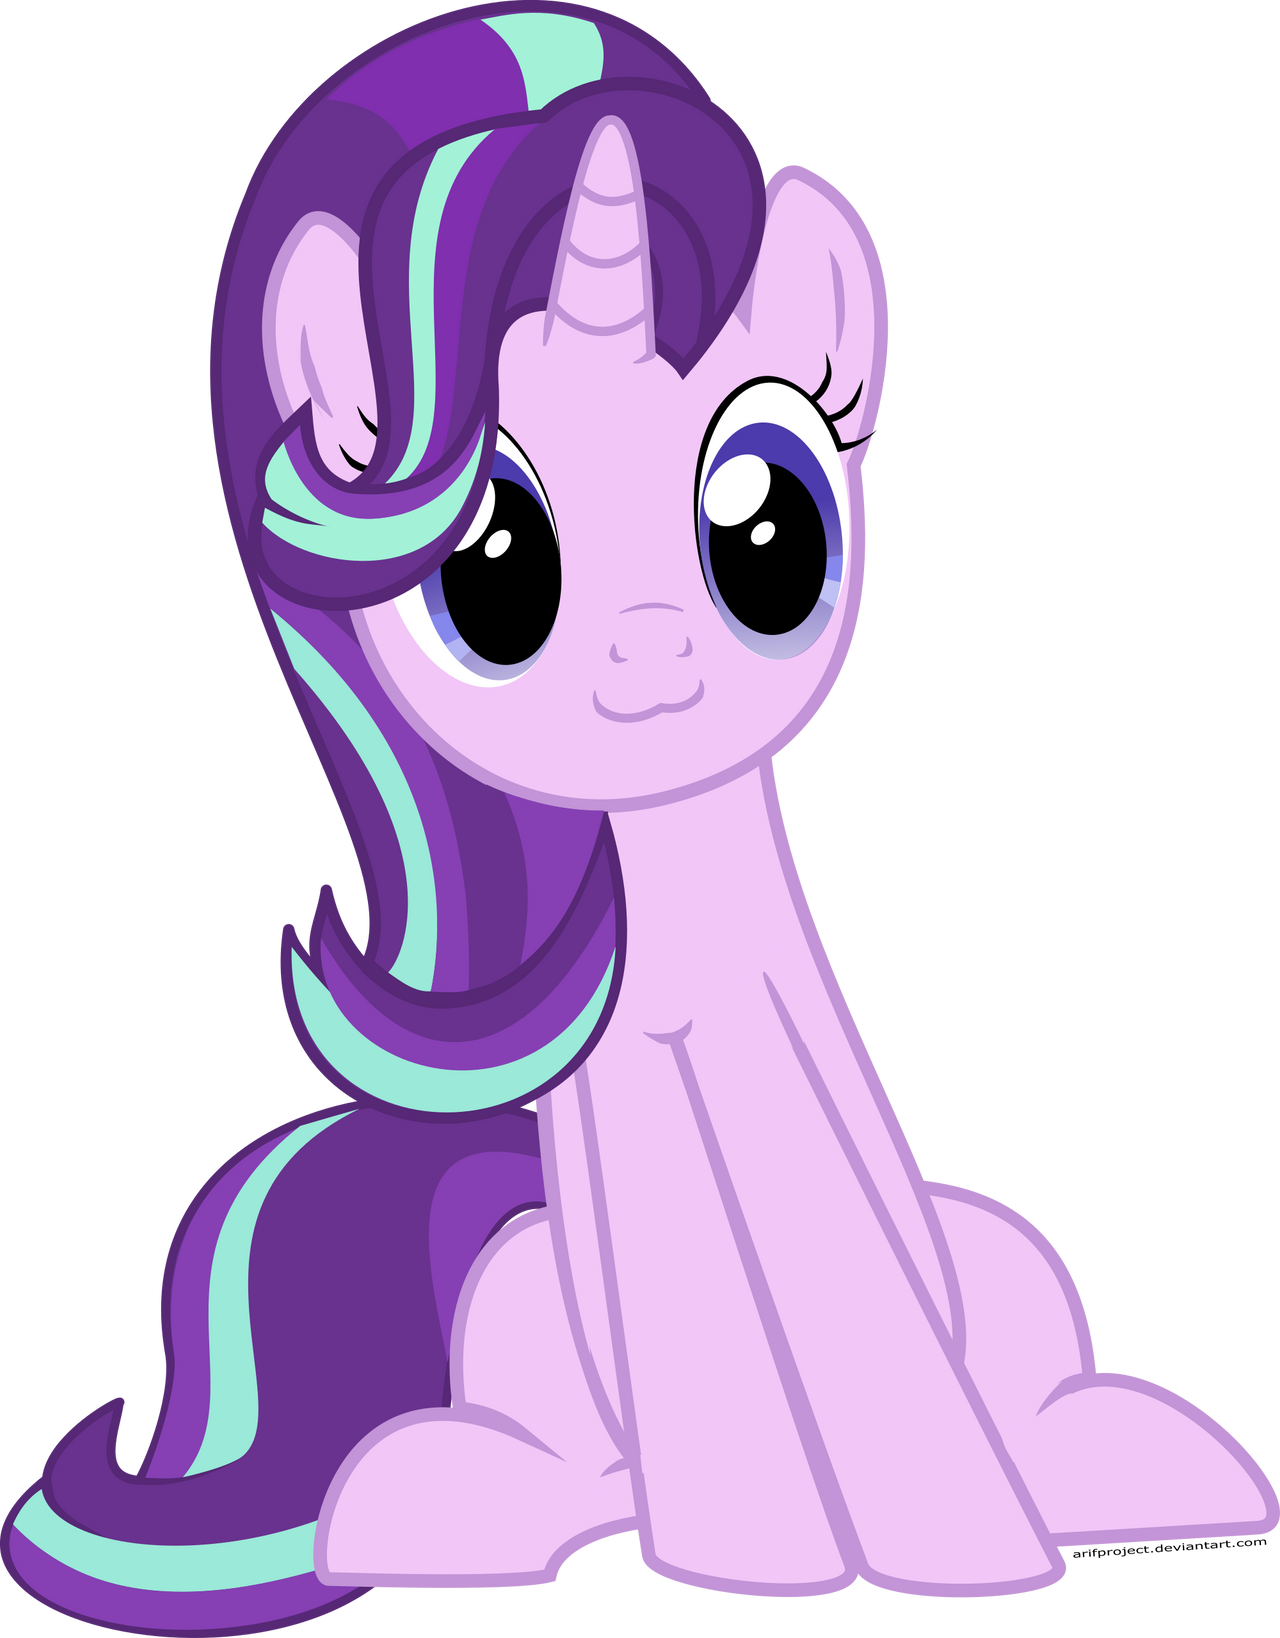 KRumors XP y ACE Starlight_glimmer_cat_face_vector_by_arifproject_d9uhk0h-fullview.png?token=eyJ0eXAiOiJKV1QiLCJhbGciOiJIUzI1NiJ9.eyJzdWIiOiJ1cm46YXBwOjdlMGQxODg5ODIyNjQzNzNhNWYwZDQxNWVhMGQyNmUwIiwiaXNzIjoidXJuOmFwcDo3ZTBkMTg4OTgyMjY0MzczYTVmMGQ0MTVlYTBkMjZlMCIsIm9iaiI6W1t7ImhlaWdodCI6Ijw9MTYzOCIsInBhdGgiOiJcL2ZcL2Q5NGMwNGY5LTNiZWItNGFjNS1hZTViLWUyZDRhNTg0NTZiYVwvZDl1aGswaC1lMzNhZGUwMi1hZGNmLTQ5N2QtOTEzMy01OTRkYjc2M2M1NzIucG5nIiwid2lkdGgiOiI8PTEyODAifV1dLCJhdWQiOlsidXJuOnNlcnZpY2U6aW1hZ2Uub3BlcmF0aW9ucyJdfQ